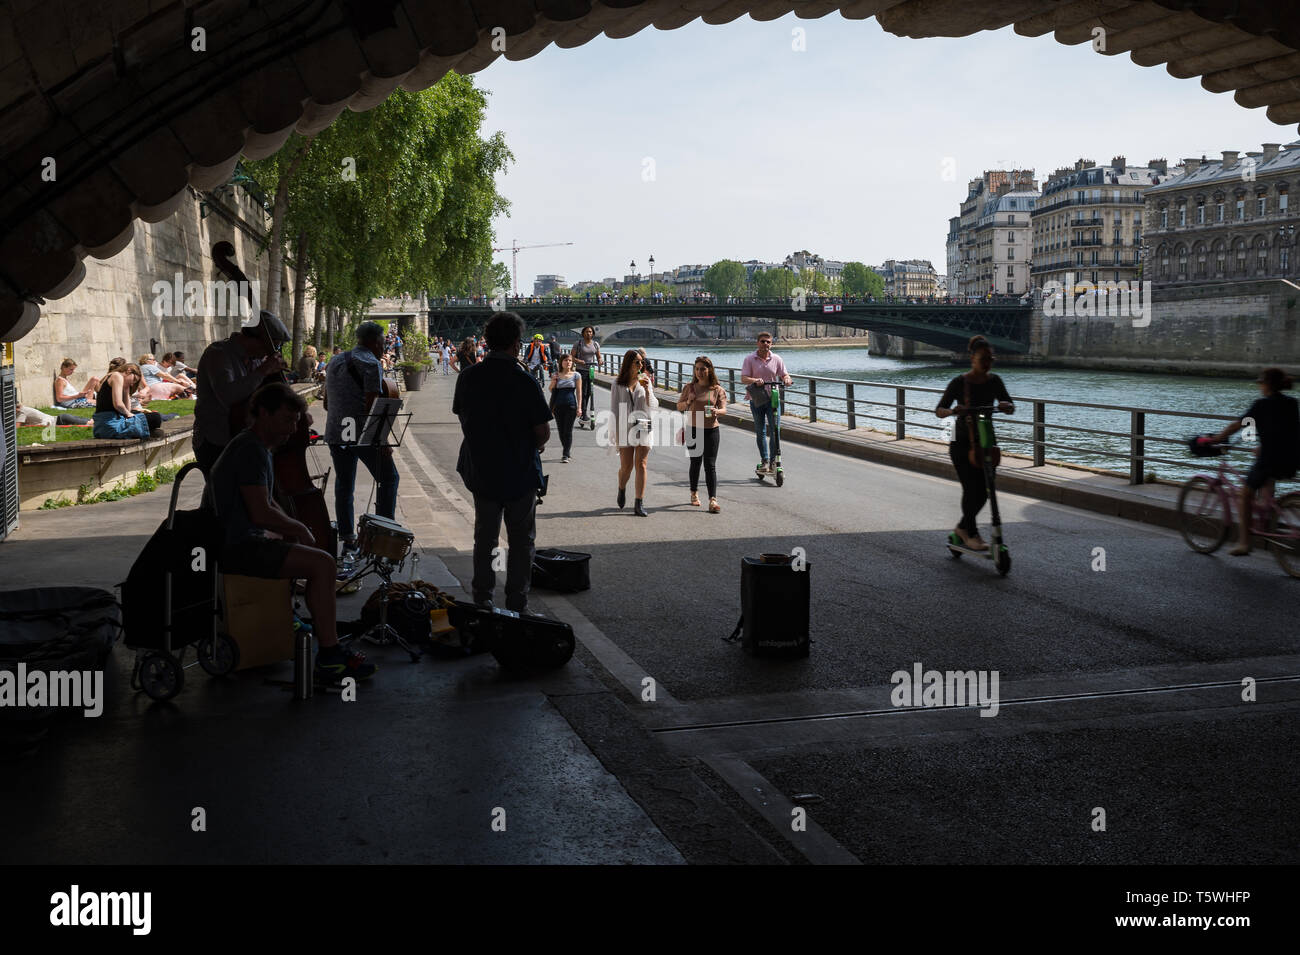 Paris, France - April 2019: Easter activities on the River Seine - Stock Image